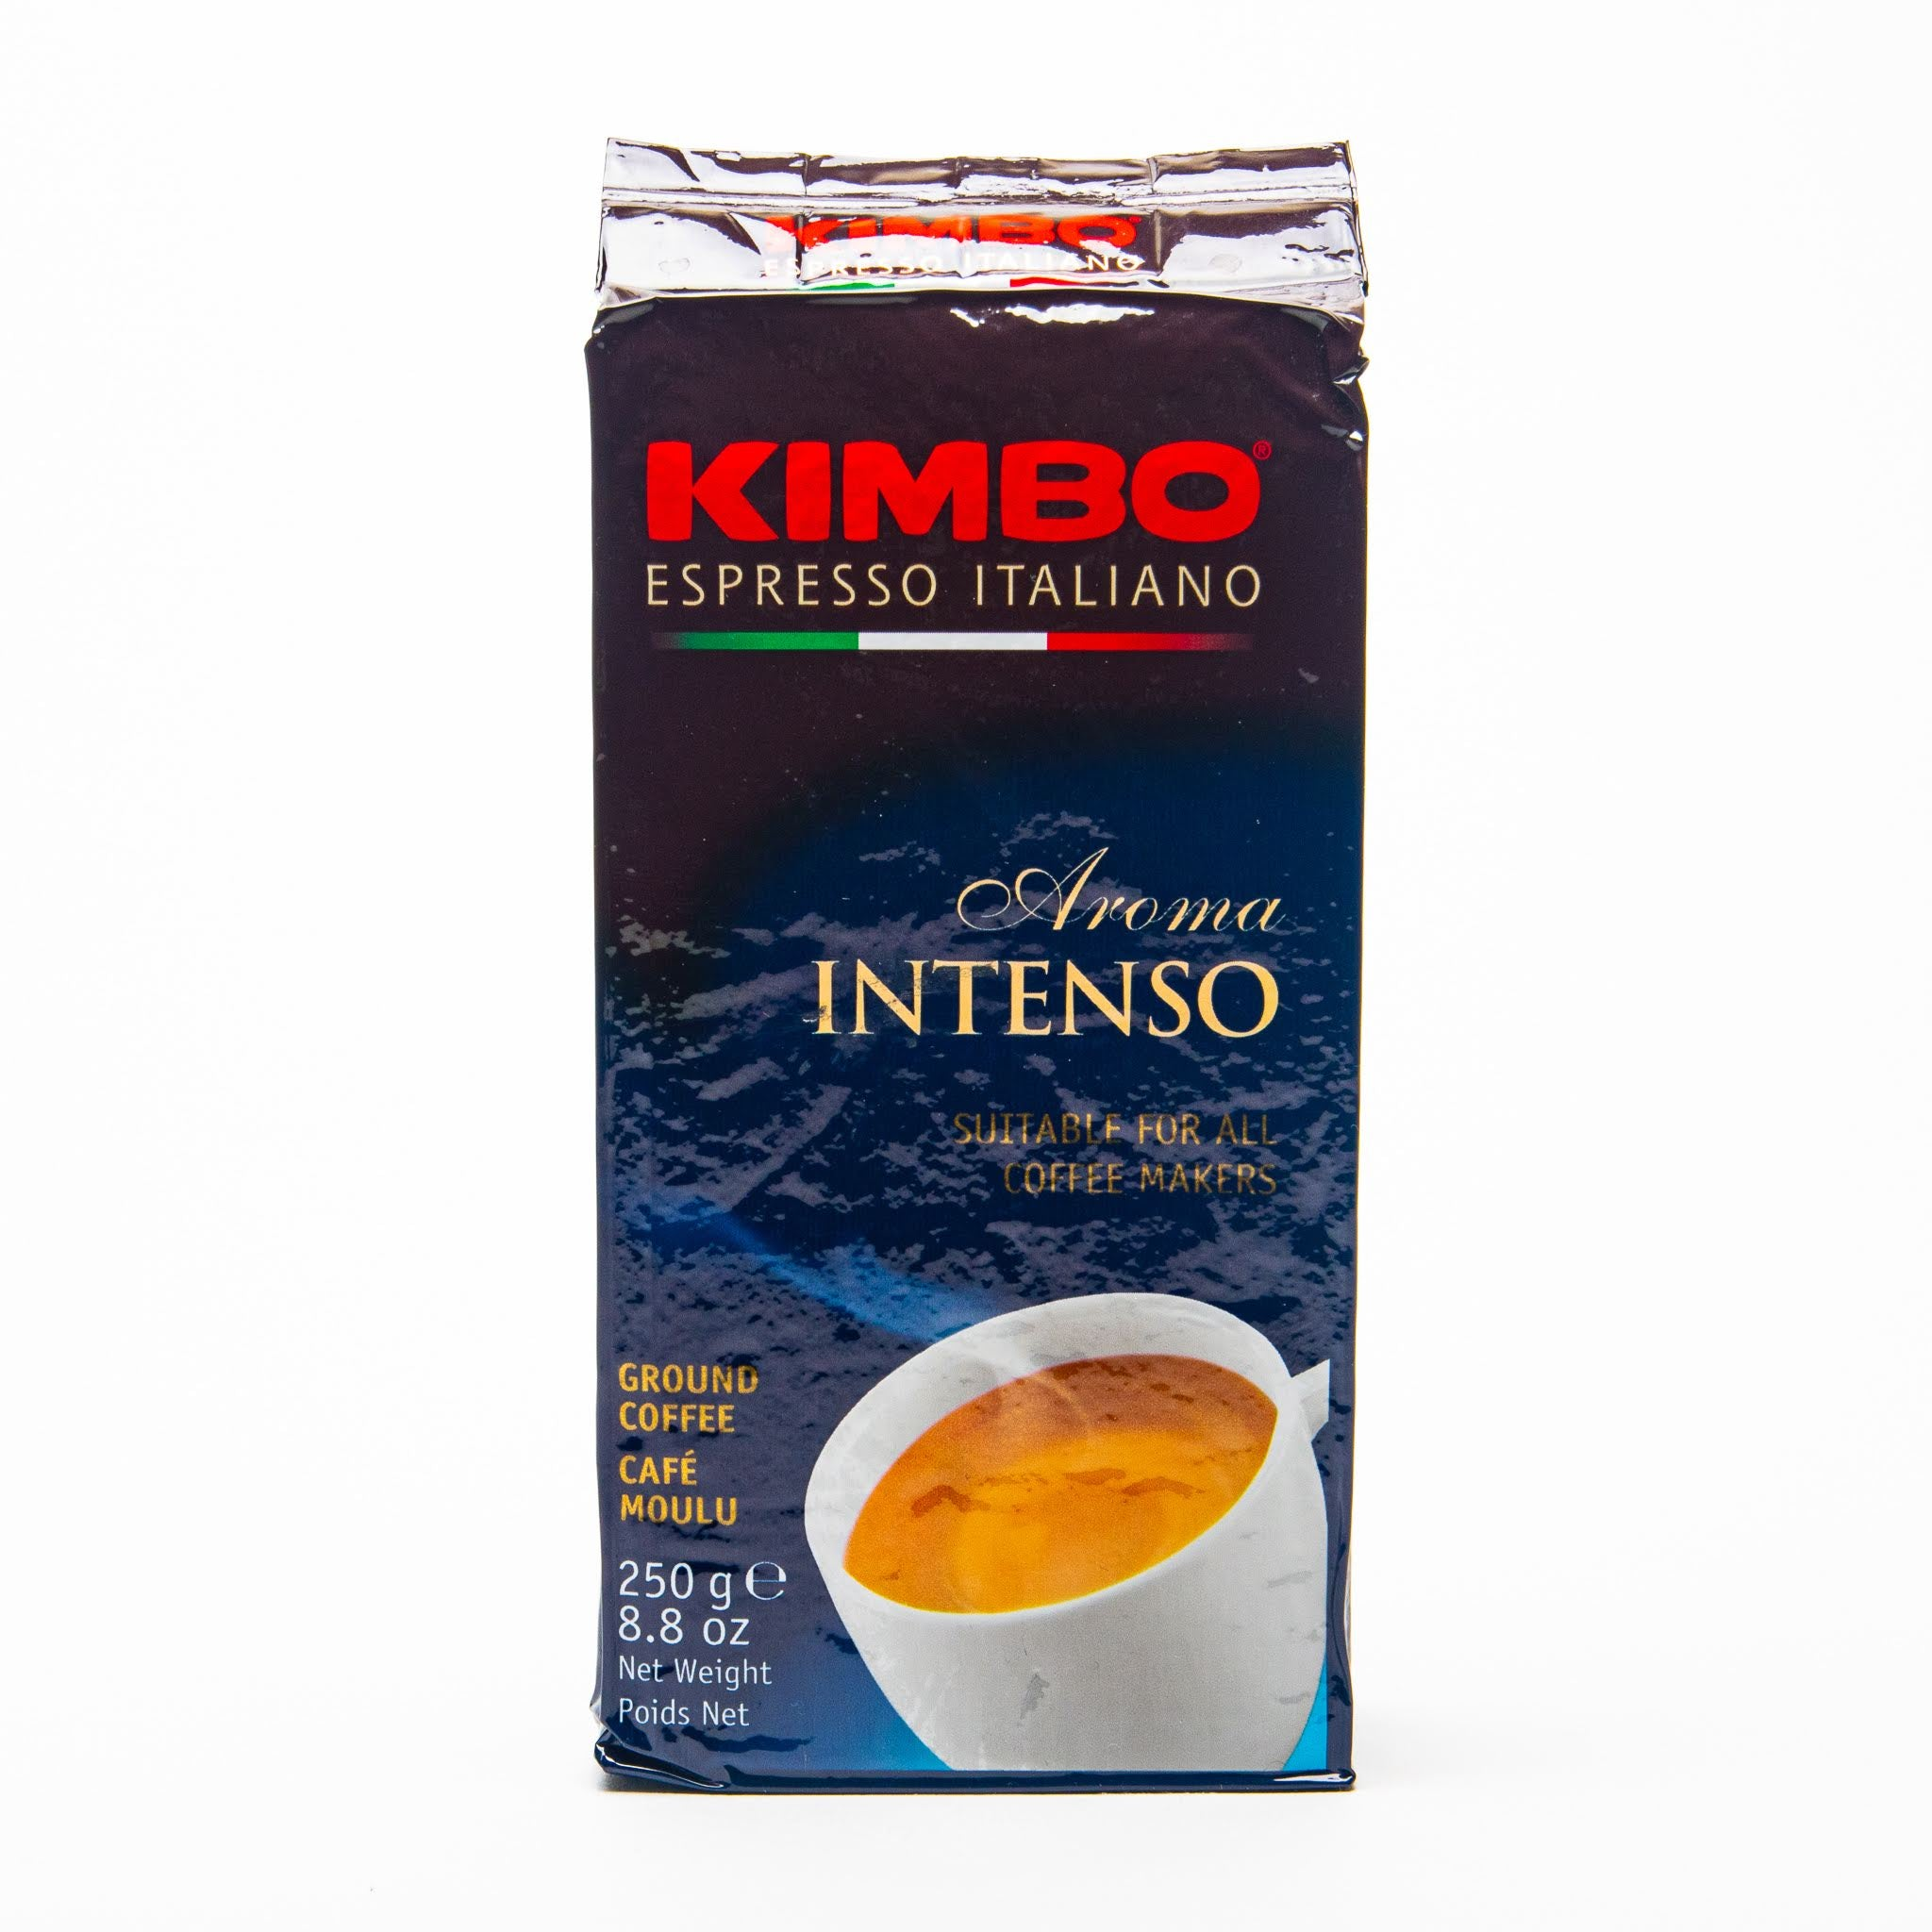 kimbo aroma intenso ground coffee from naples italy front view of packet